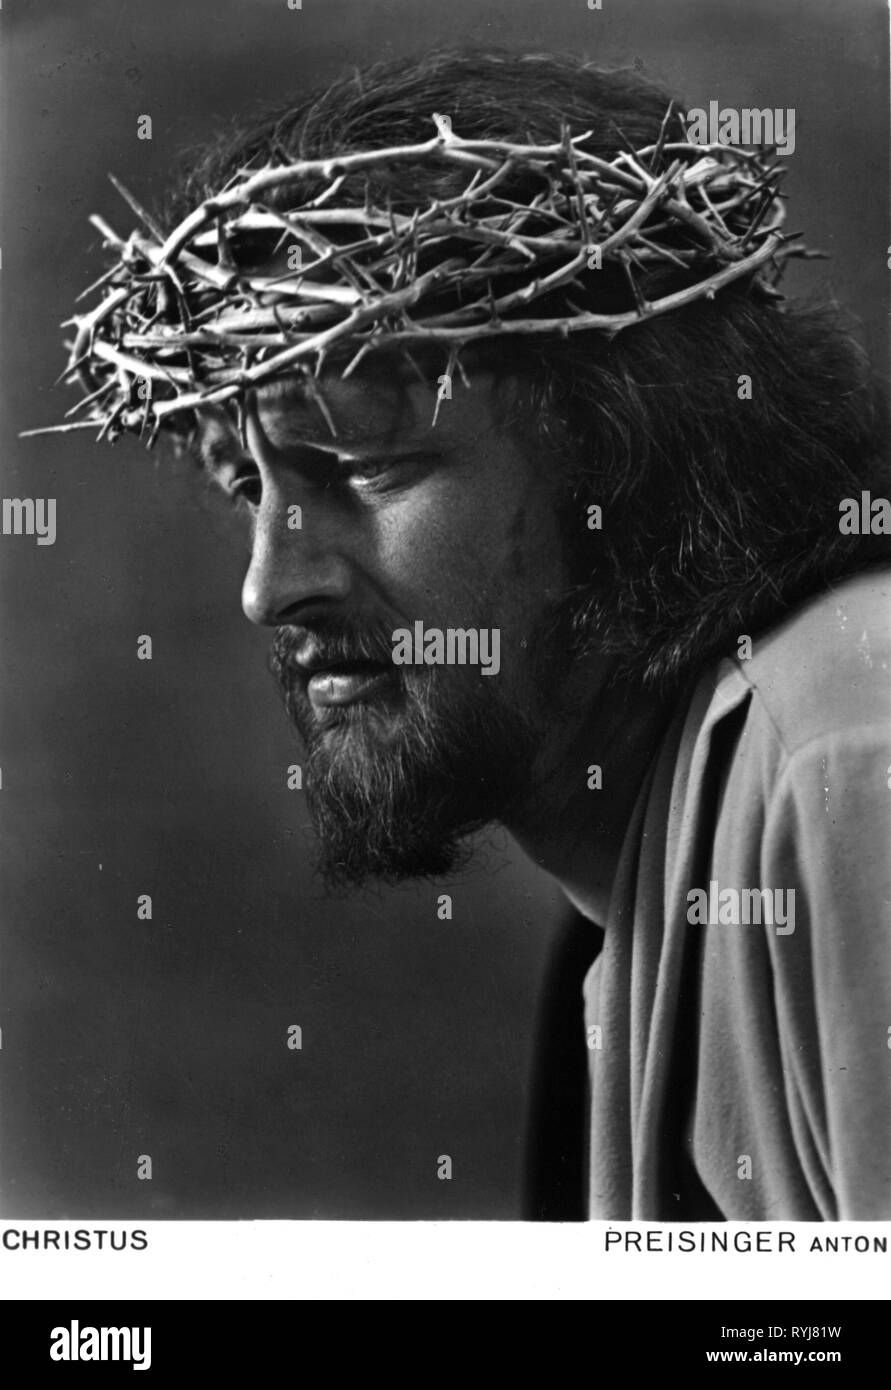 Theatre theater passion plays oberammergau 1950 jesus christ anton preisinger